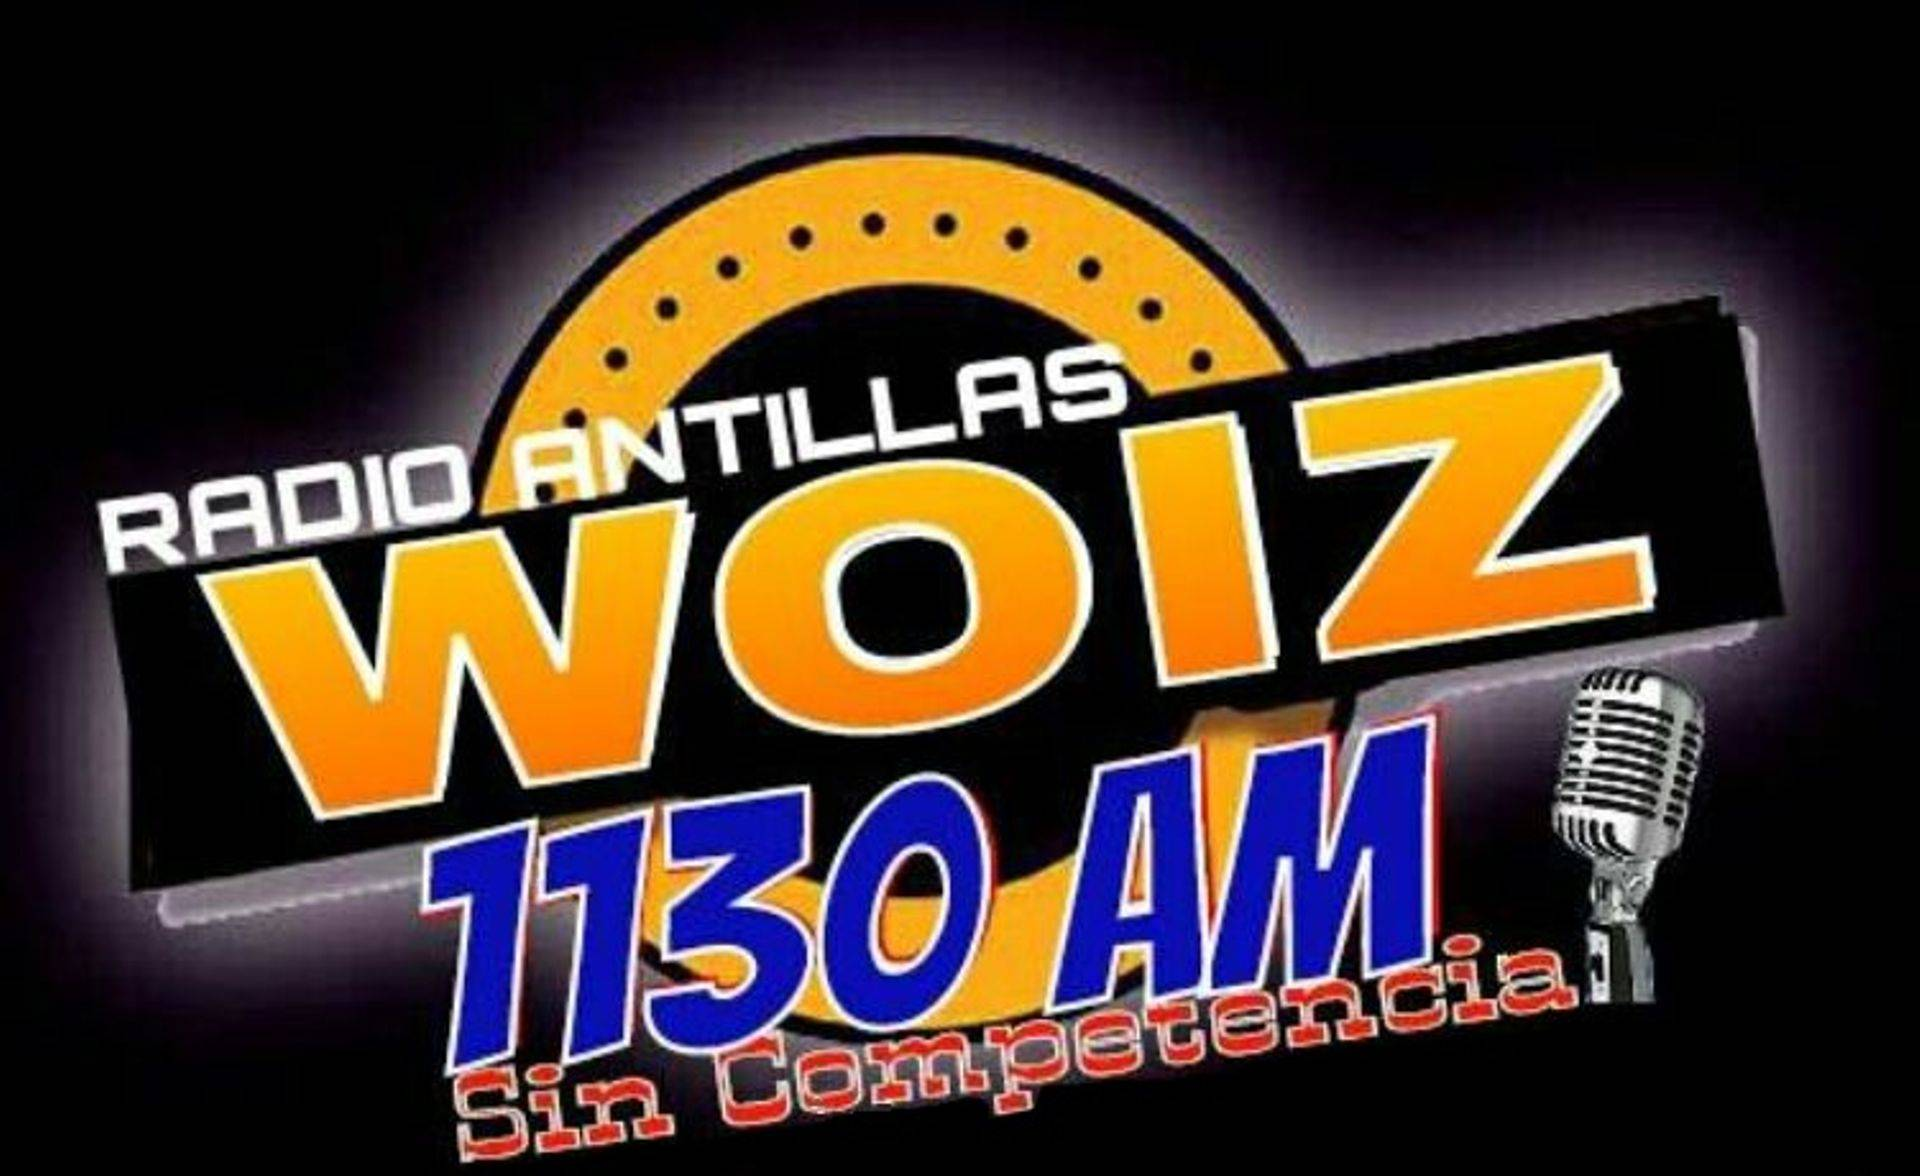 Radio Antillas 1130AM